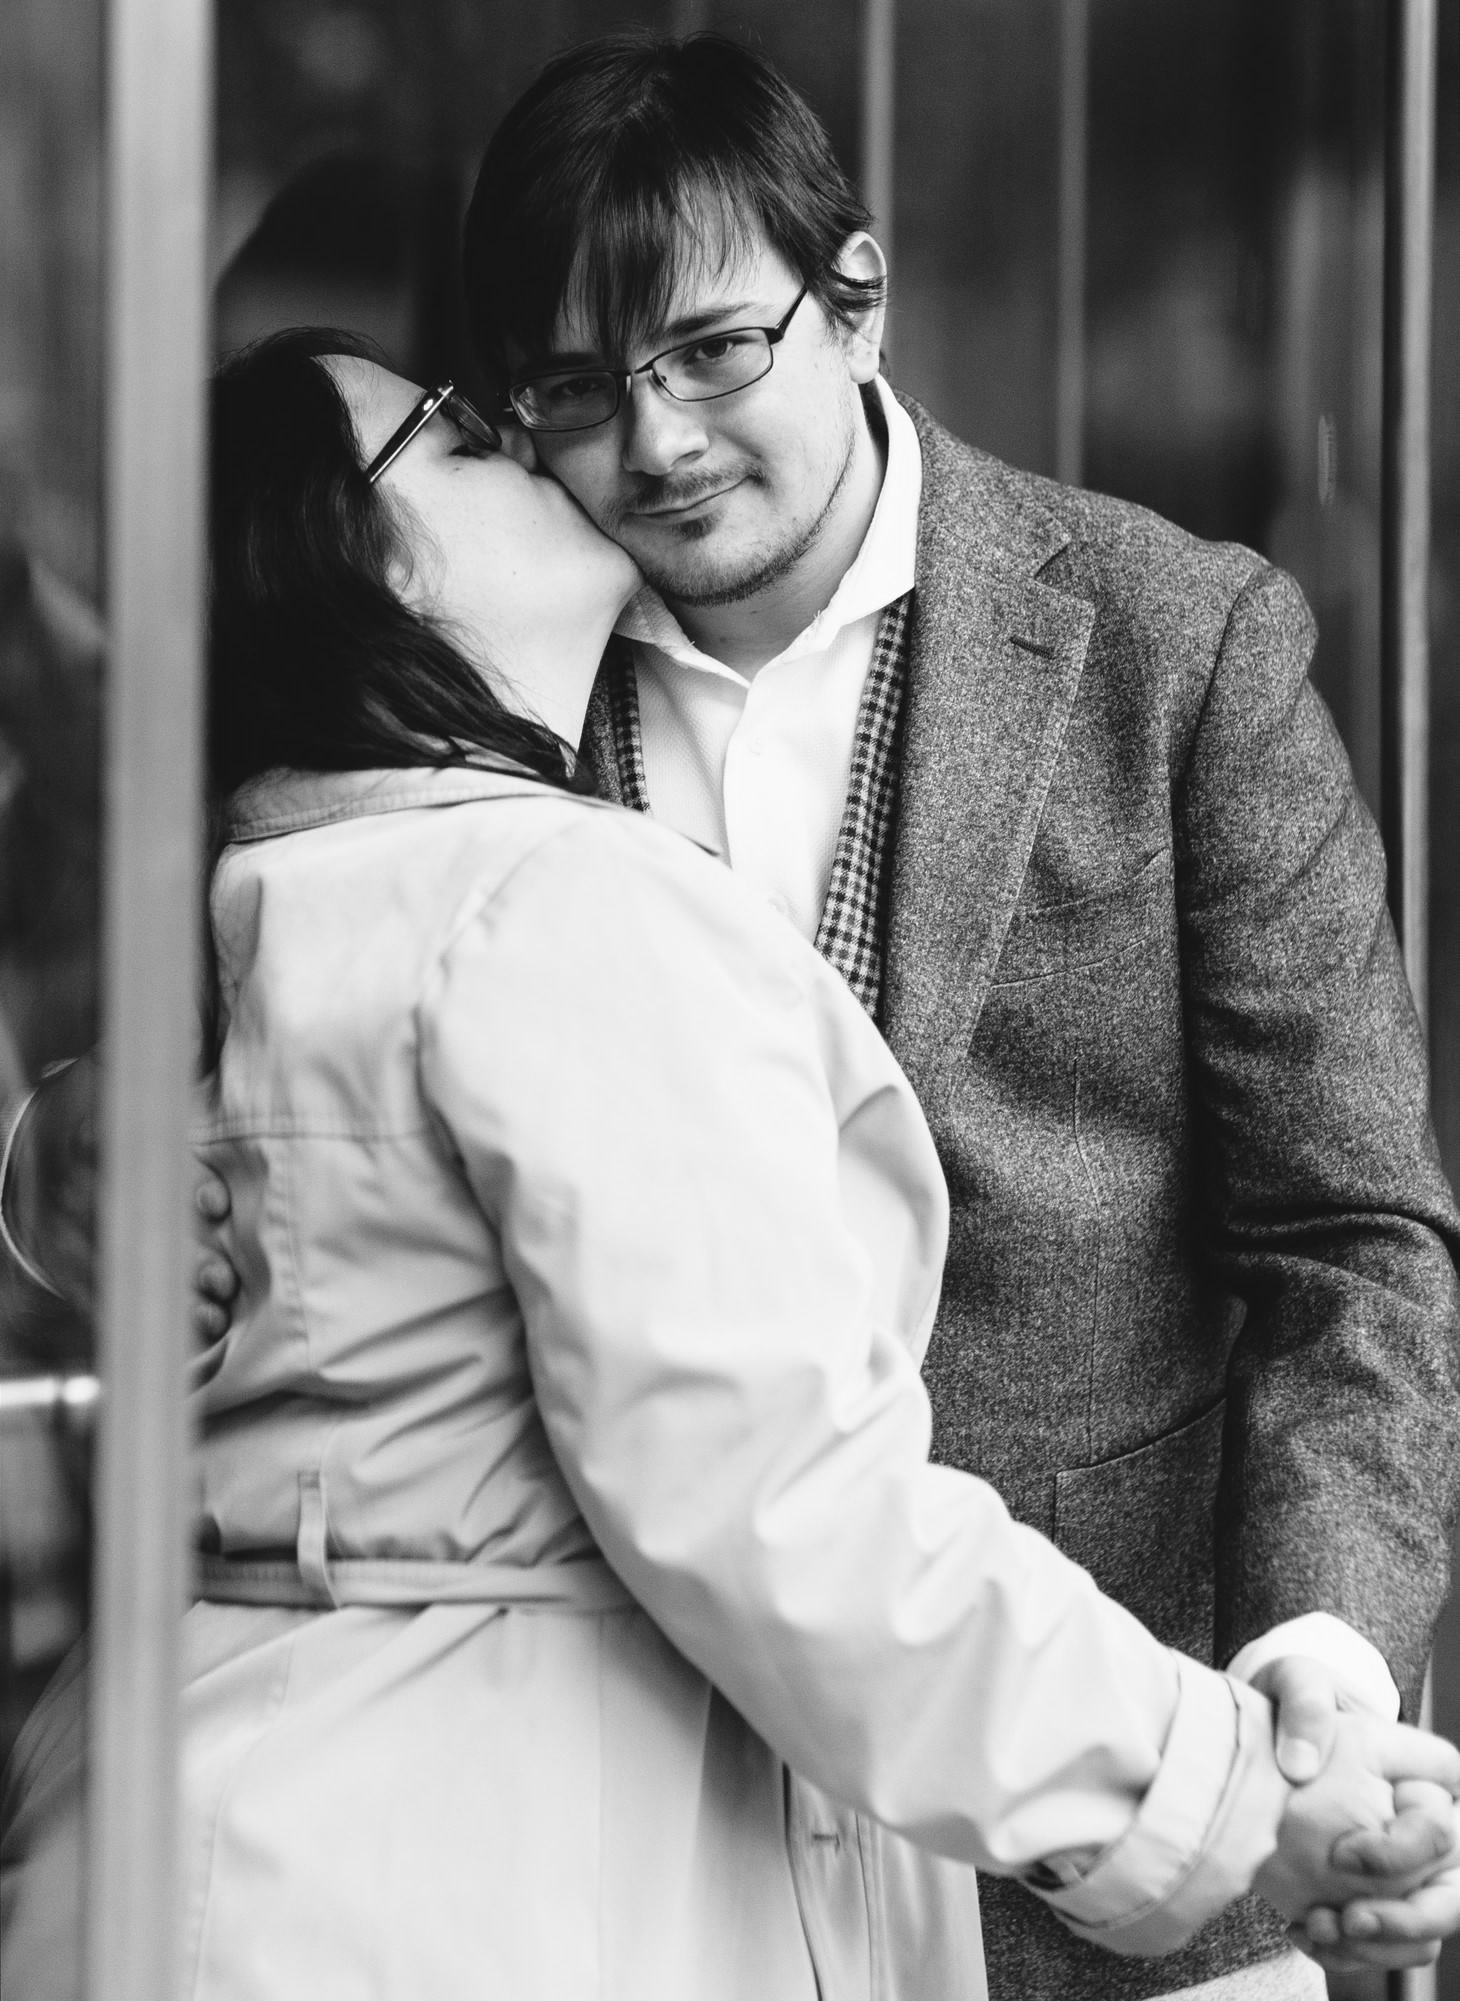 007-nyc-wedding-photographer-puppy-museum-of-natural-history-mud-coffee-fall-central-park-engagement.jpg